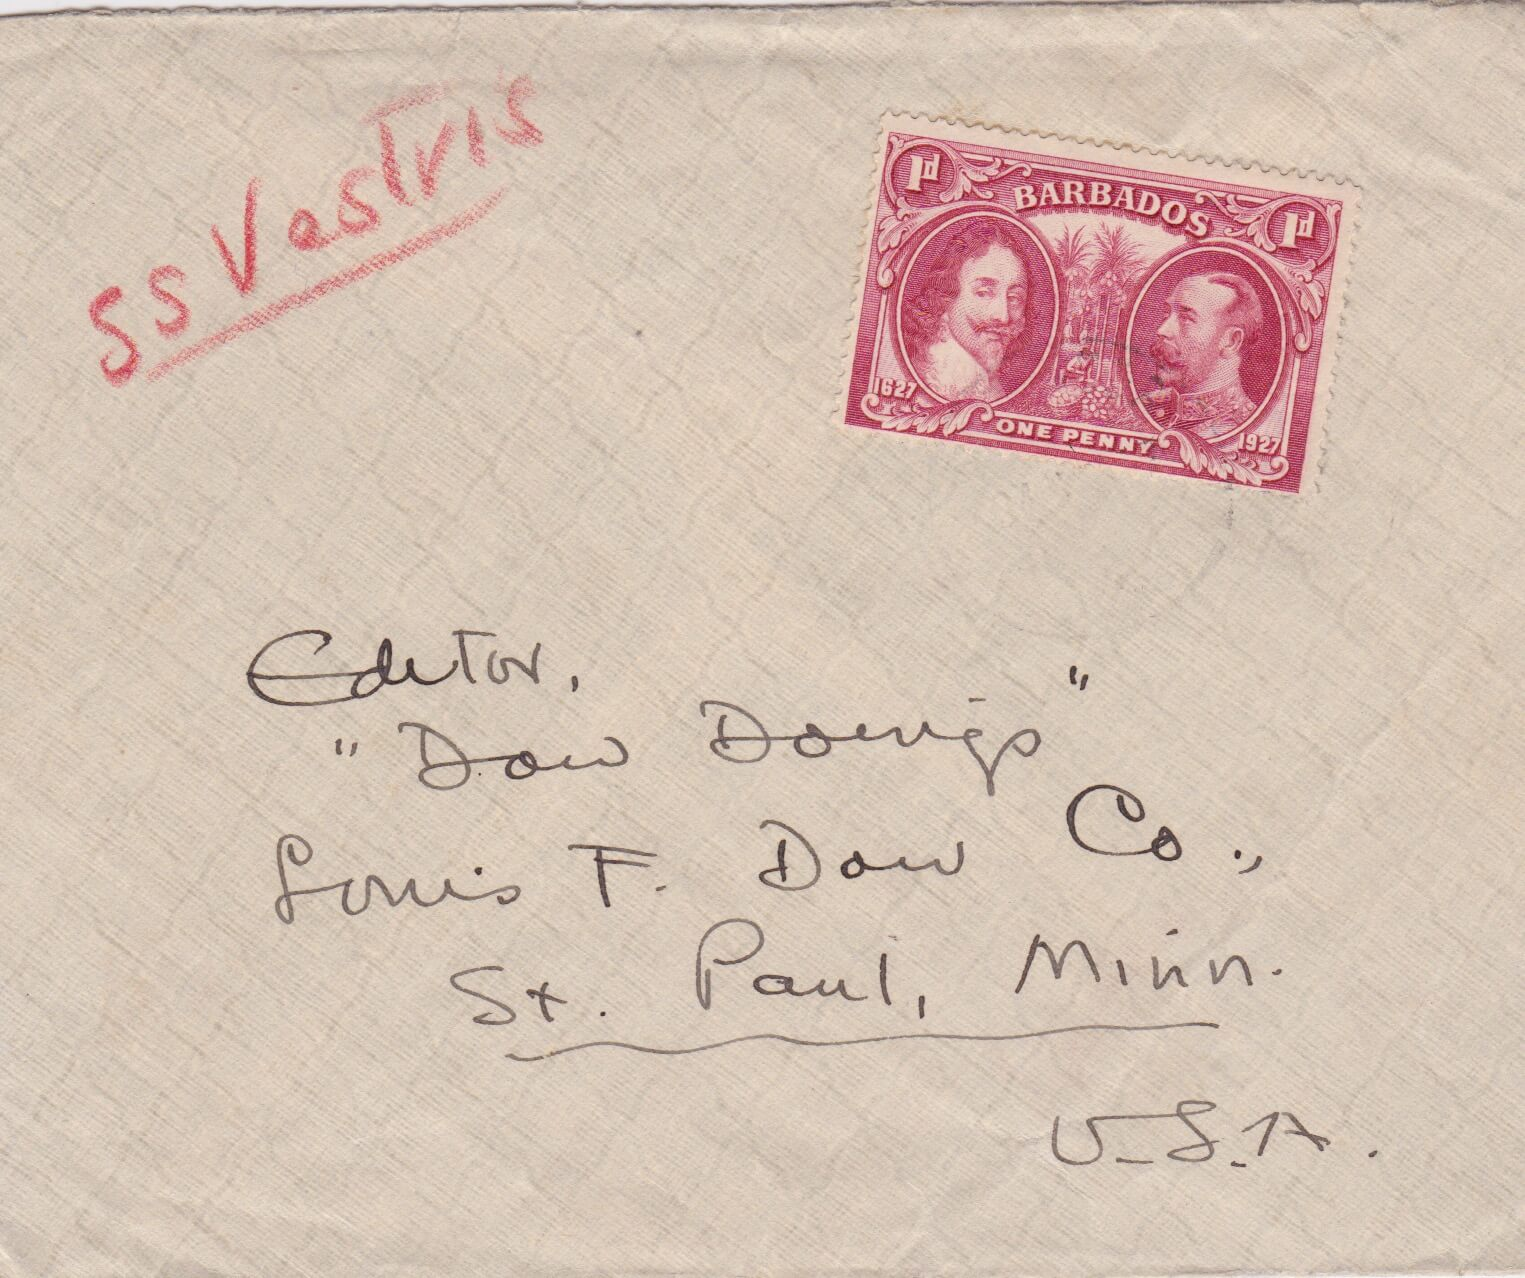 Barbados 1927 Cover to St Paul, Minnesota, USA